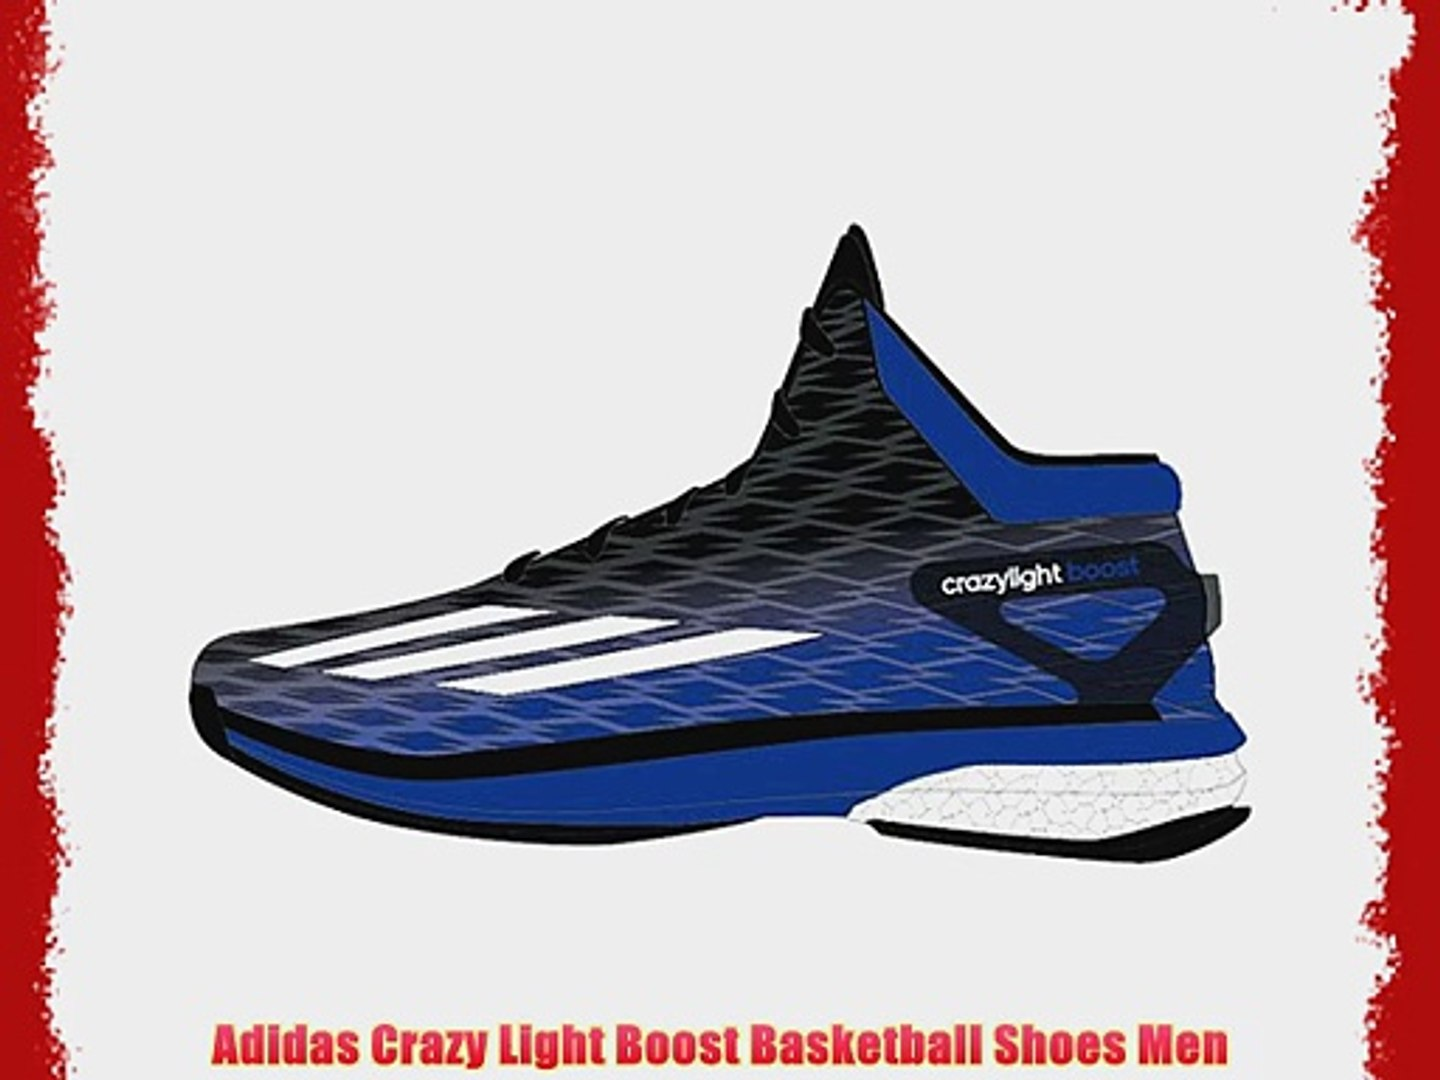 100% genuine 2018 shoes coupon code Adidas Crazy Light Boost Basketball Shoes Men